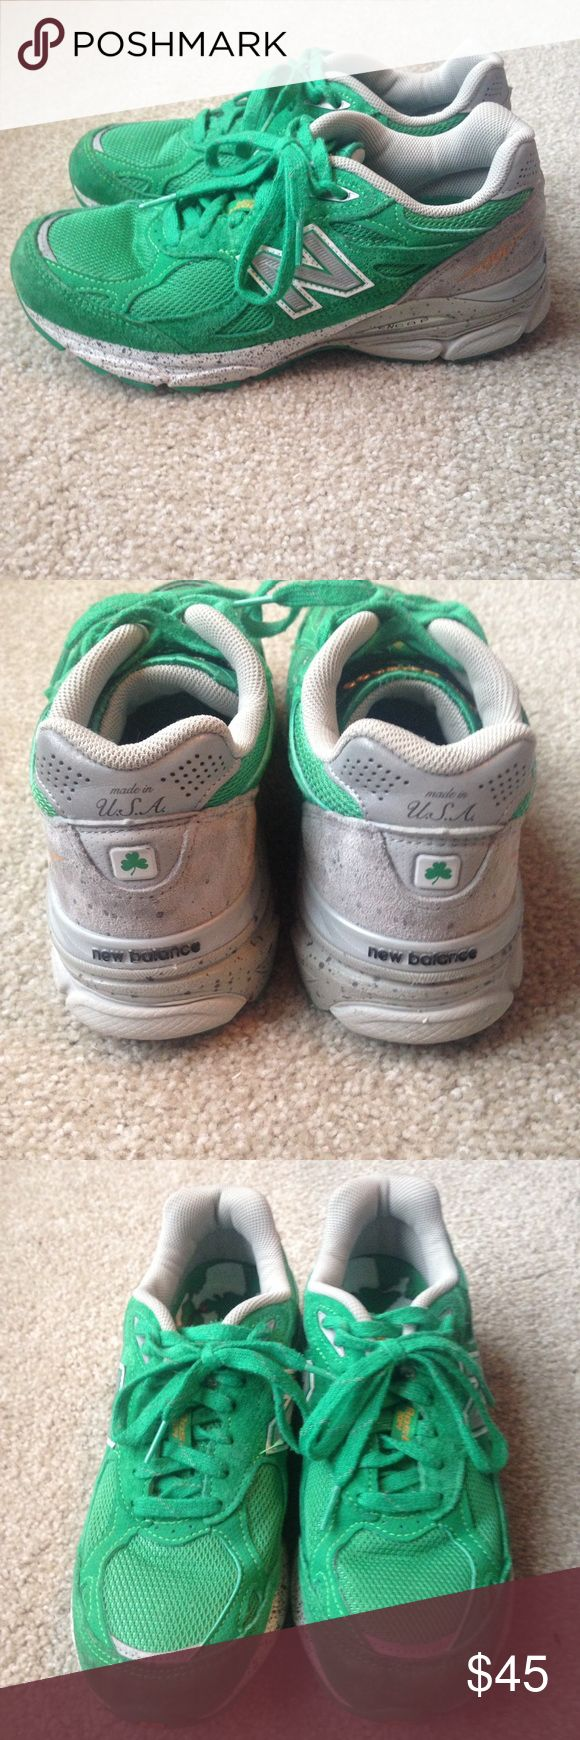 New Balance 990 - Boston Marathon 2014 Edition. New Balance 990 - Boston Marathon 2014 Edition.   Annual style released for Boston Marathon. Kelly green with shamrock accents. Map on insole. Like new - worn twice. Never worn with included insole. Size 6. New Balance Shoes Athletic Shoes